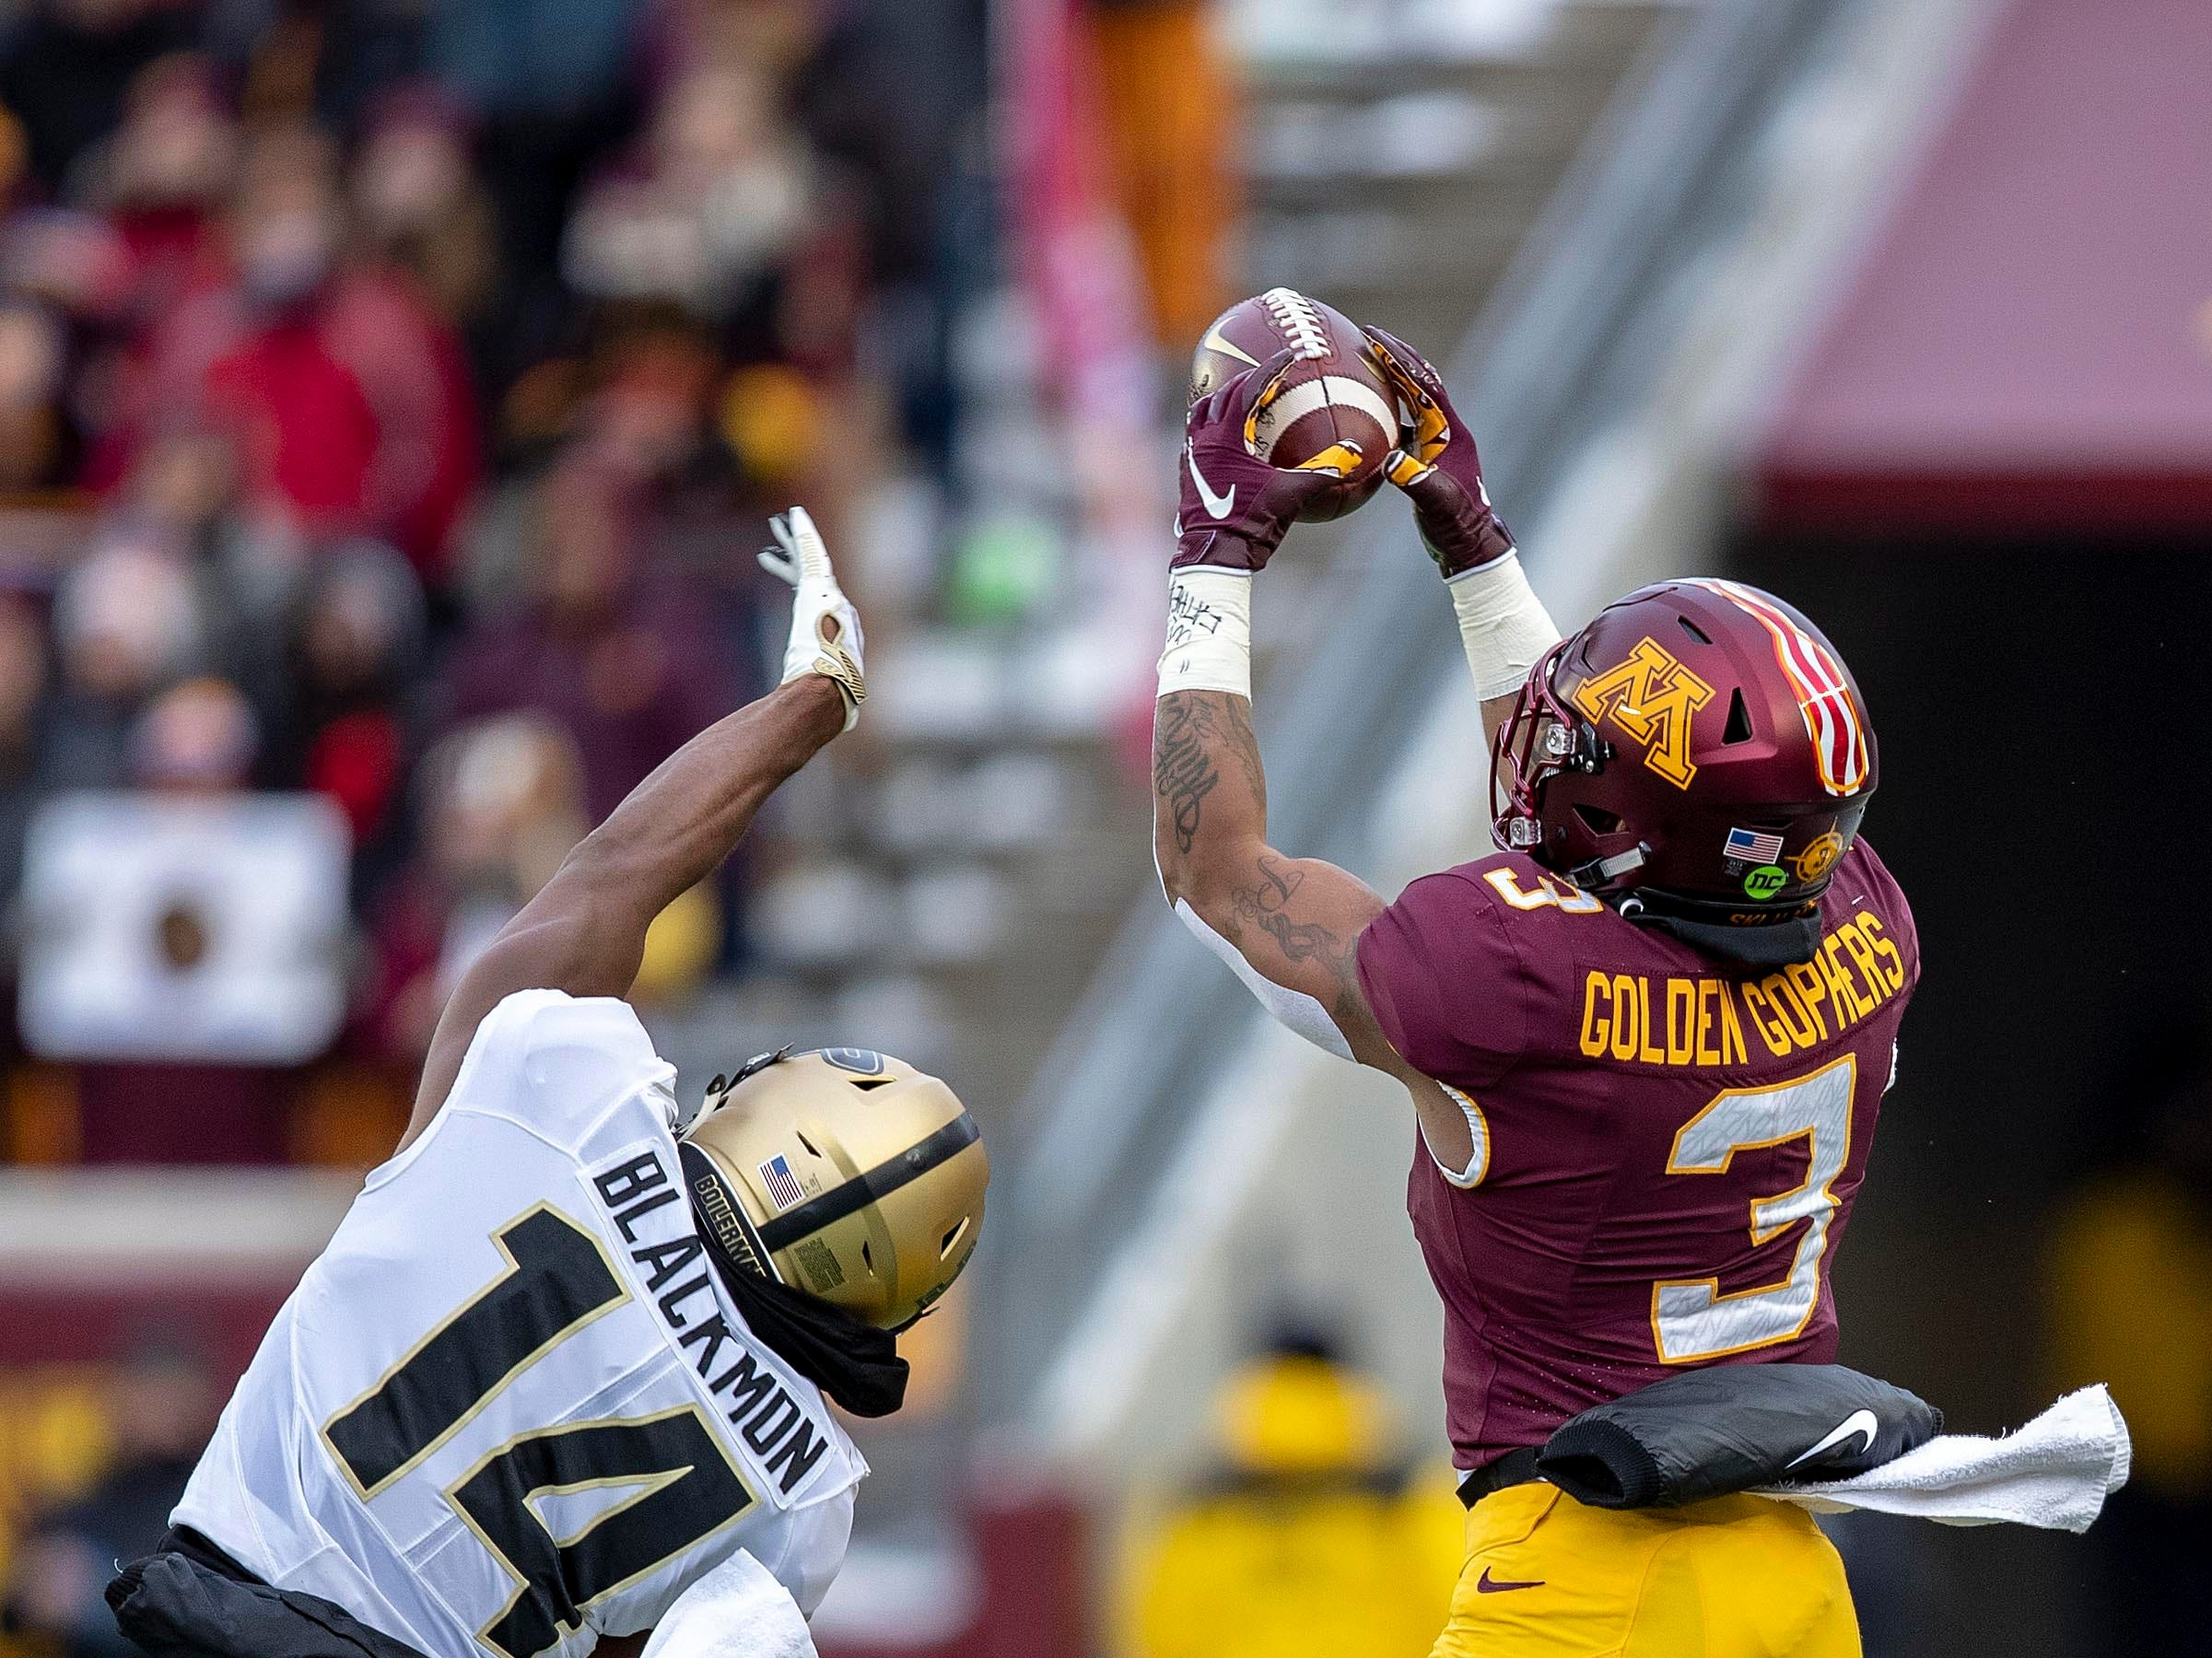 Nov 10, 2018; Minneapolis, MN, USA; Minnesota Golden Gophers wide receiver Chris Autman-Bell (3) jumps over Purdue Boilermakers cornerback Antonio Blackmon (14) to attempt to catch a pass in the first half at TCF Bank Stadium. Mandatory Credit: Jesse Johnson-USA TODAY Sports